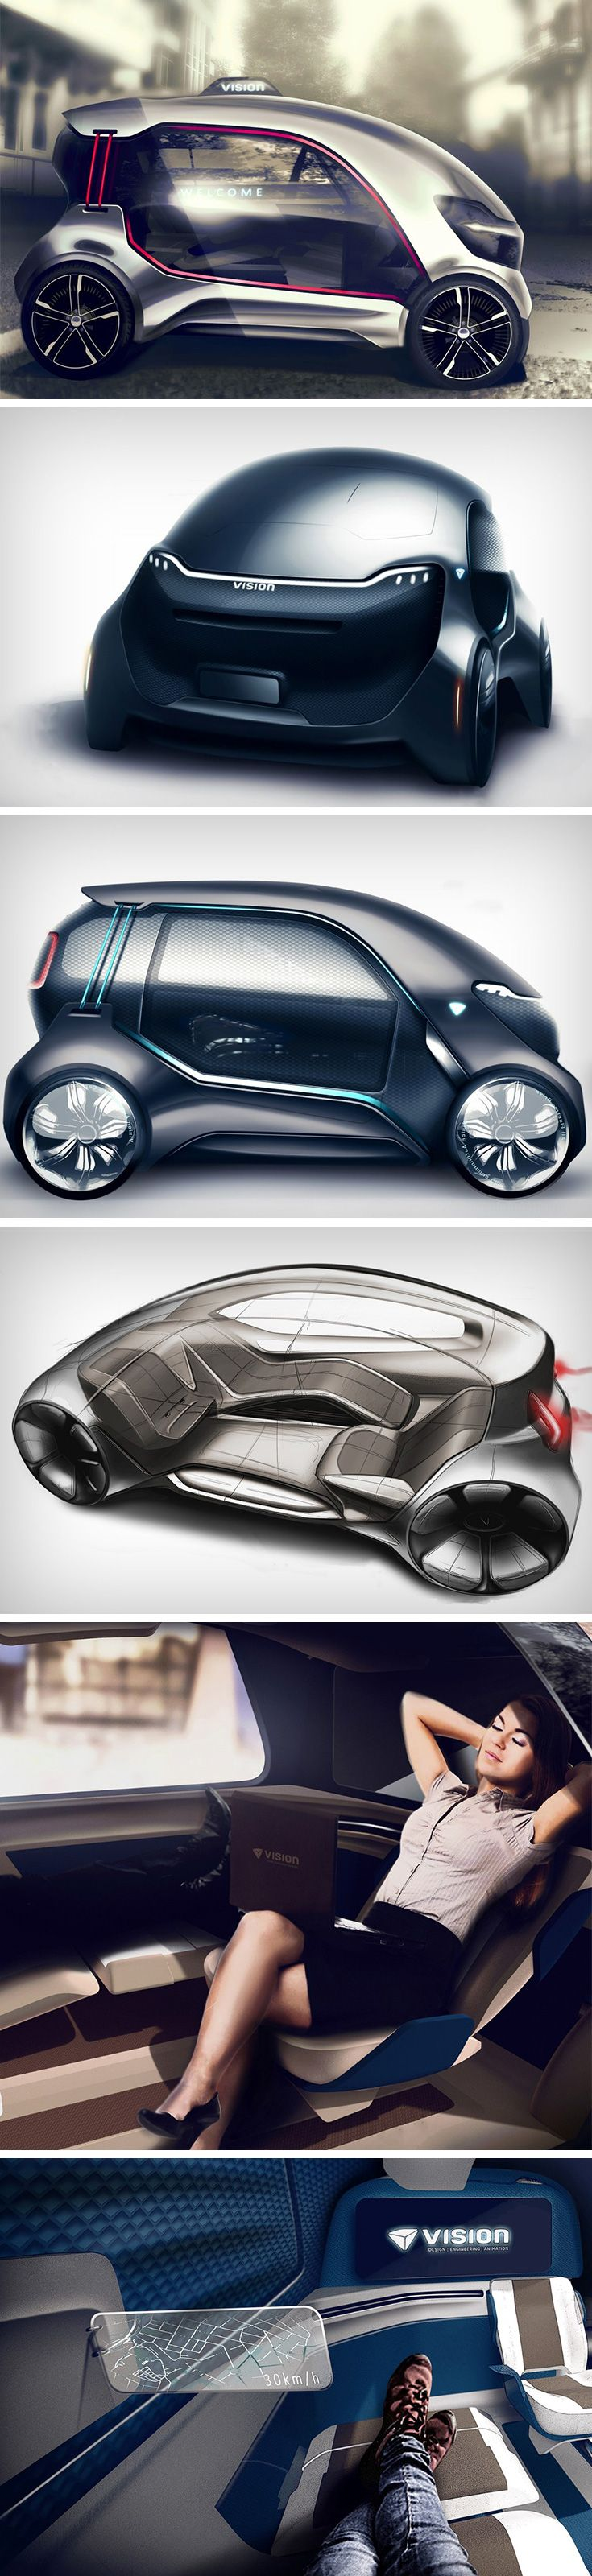 The Vision City Concept Car by Guilherme Kataoka is designed to make travel a different experience to commuters who will now ride to places instead of to drive them. The autonomous vehicle boasts of a more homely interior, allowing the car to be an extension of their homes. Designed to be a shared autonomous car, the exterior gets a makeover too, with the windscreen being ditched and more focus being given to the side windows.